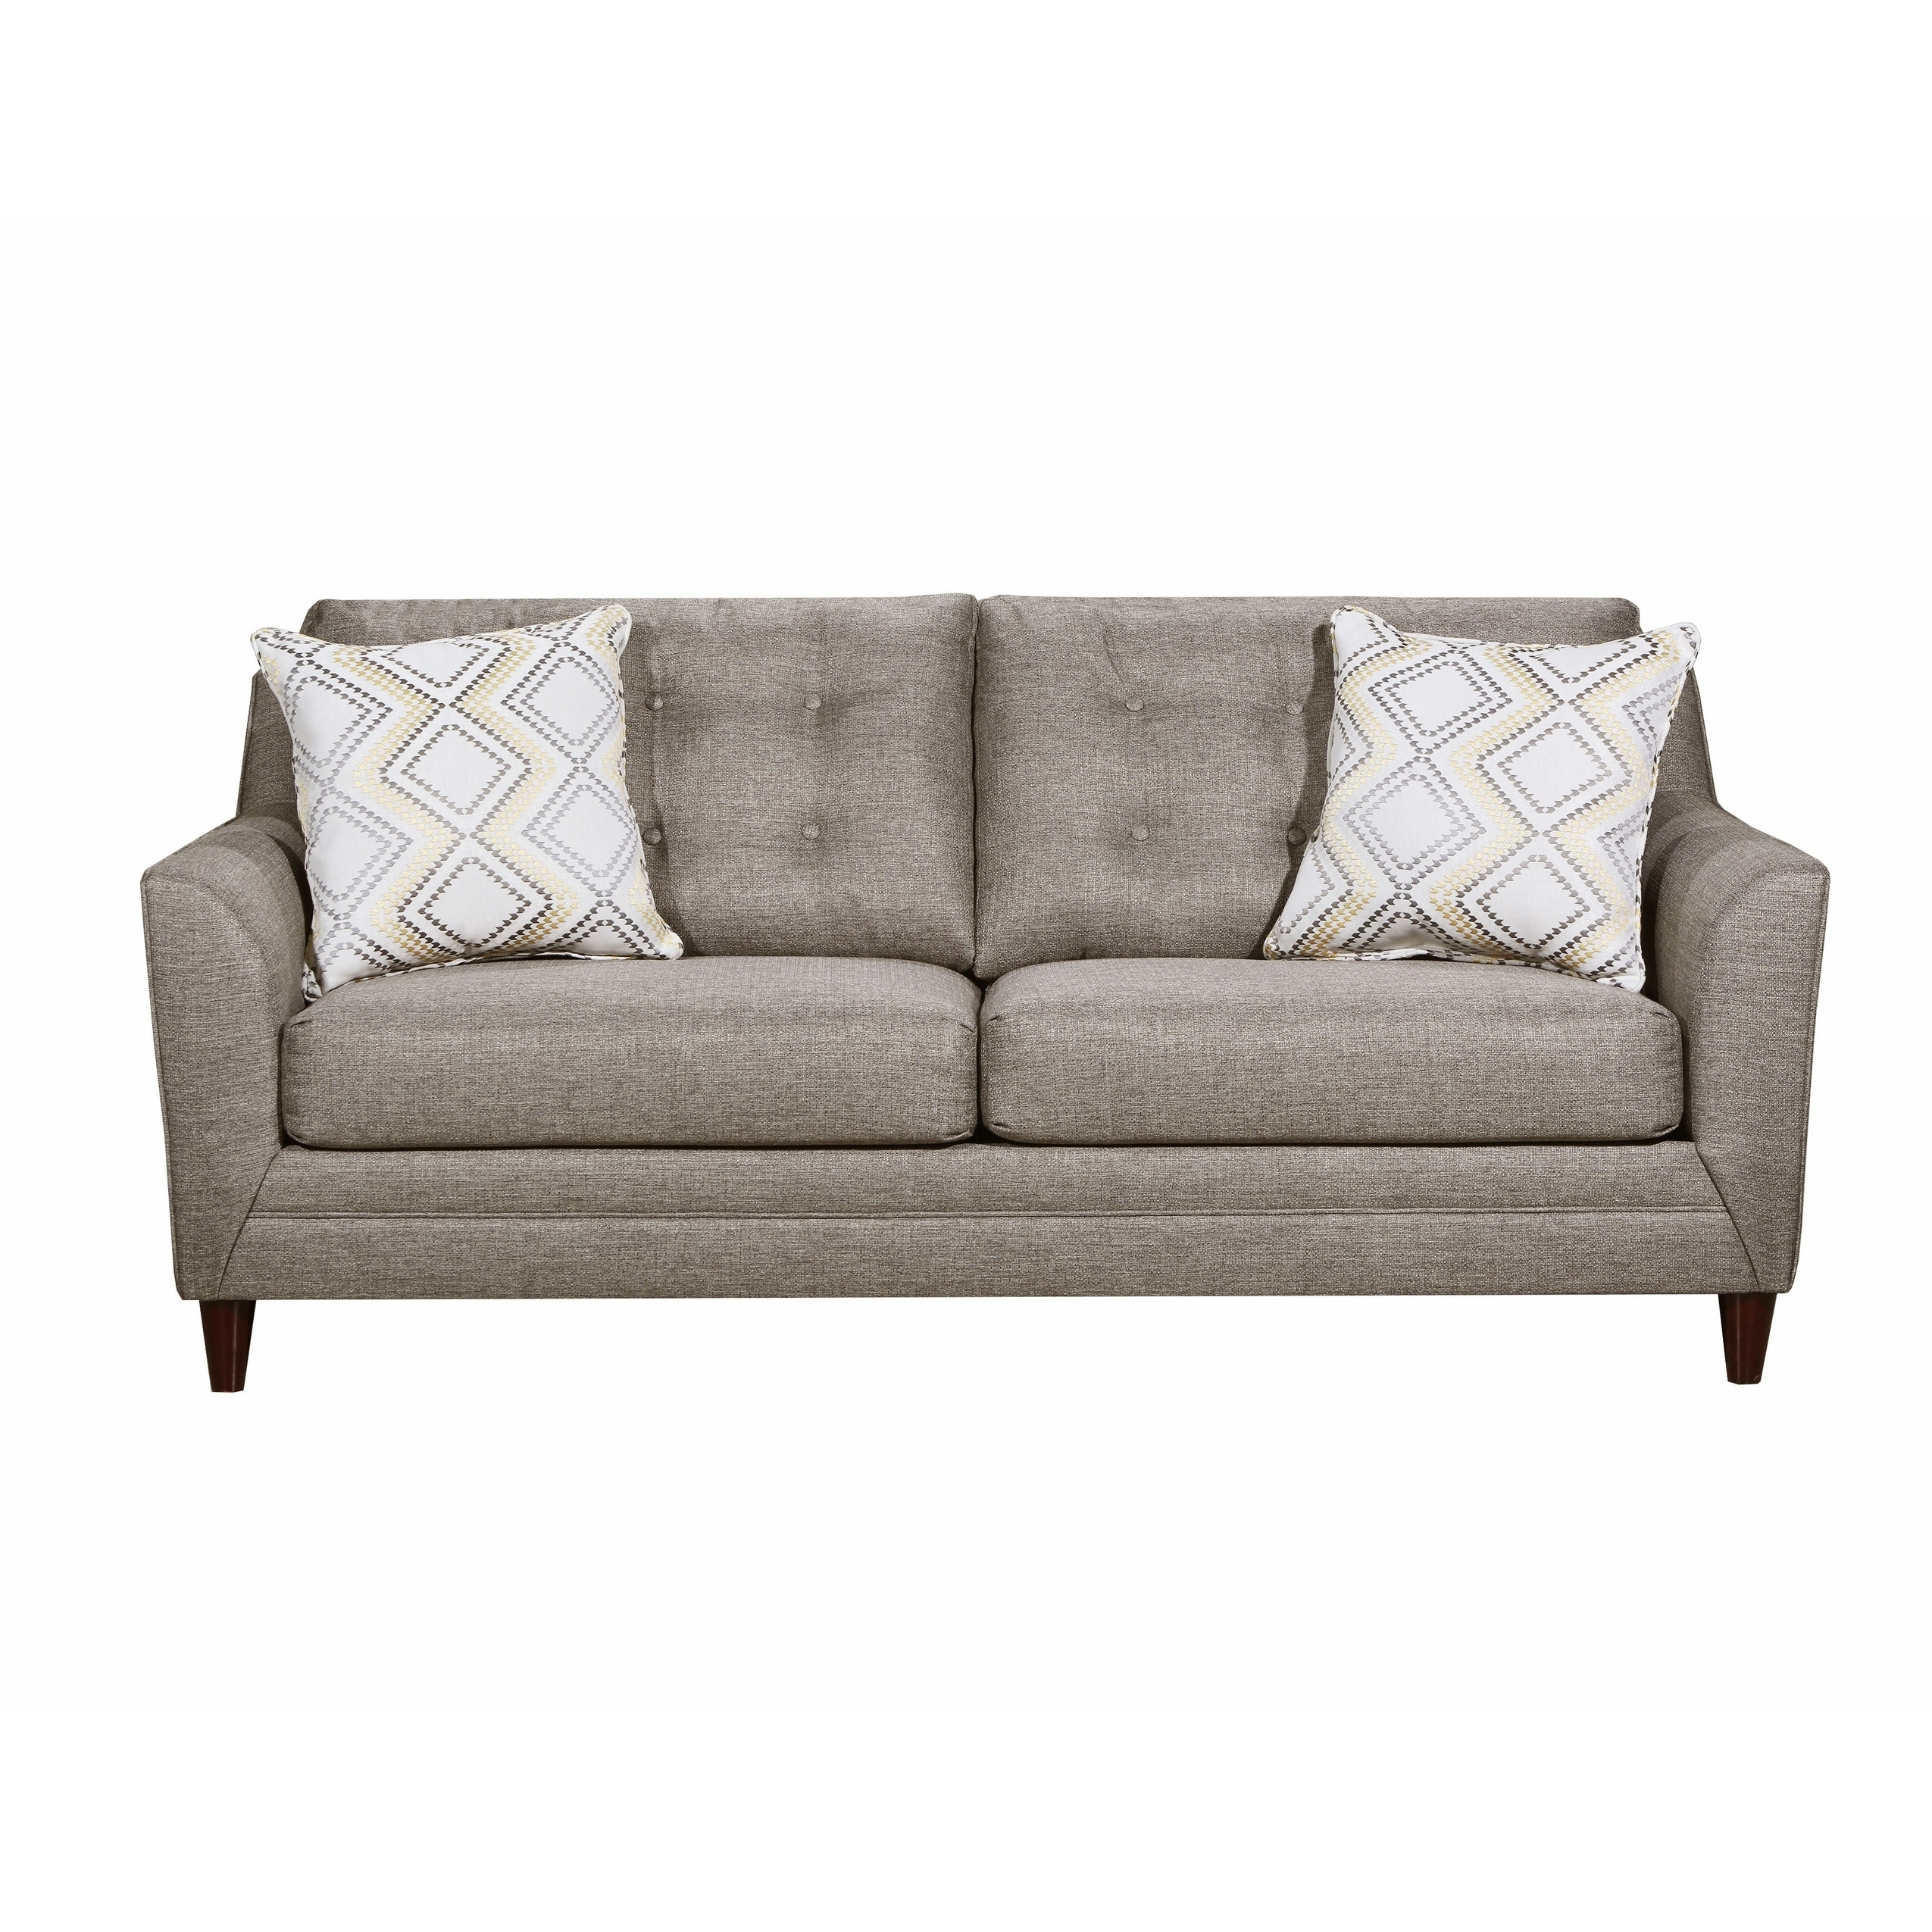 Jensen Sofa Bed Next Lane Essentials Jensen Grey Sofa